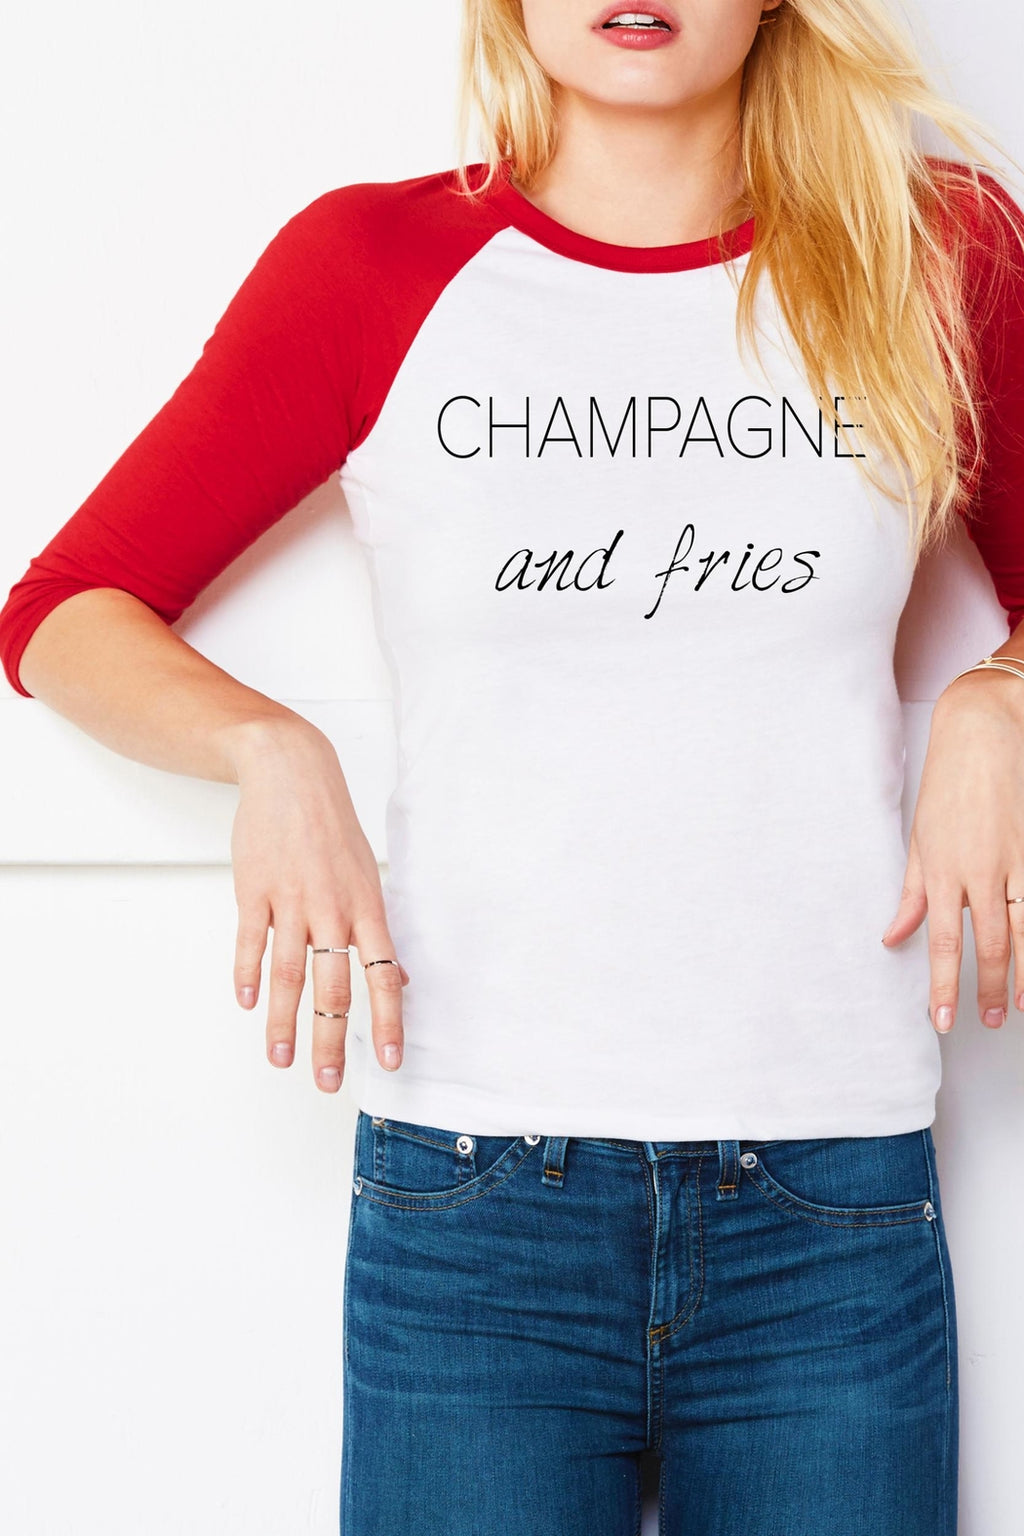 Champagne and Fries Tee - Adult